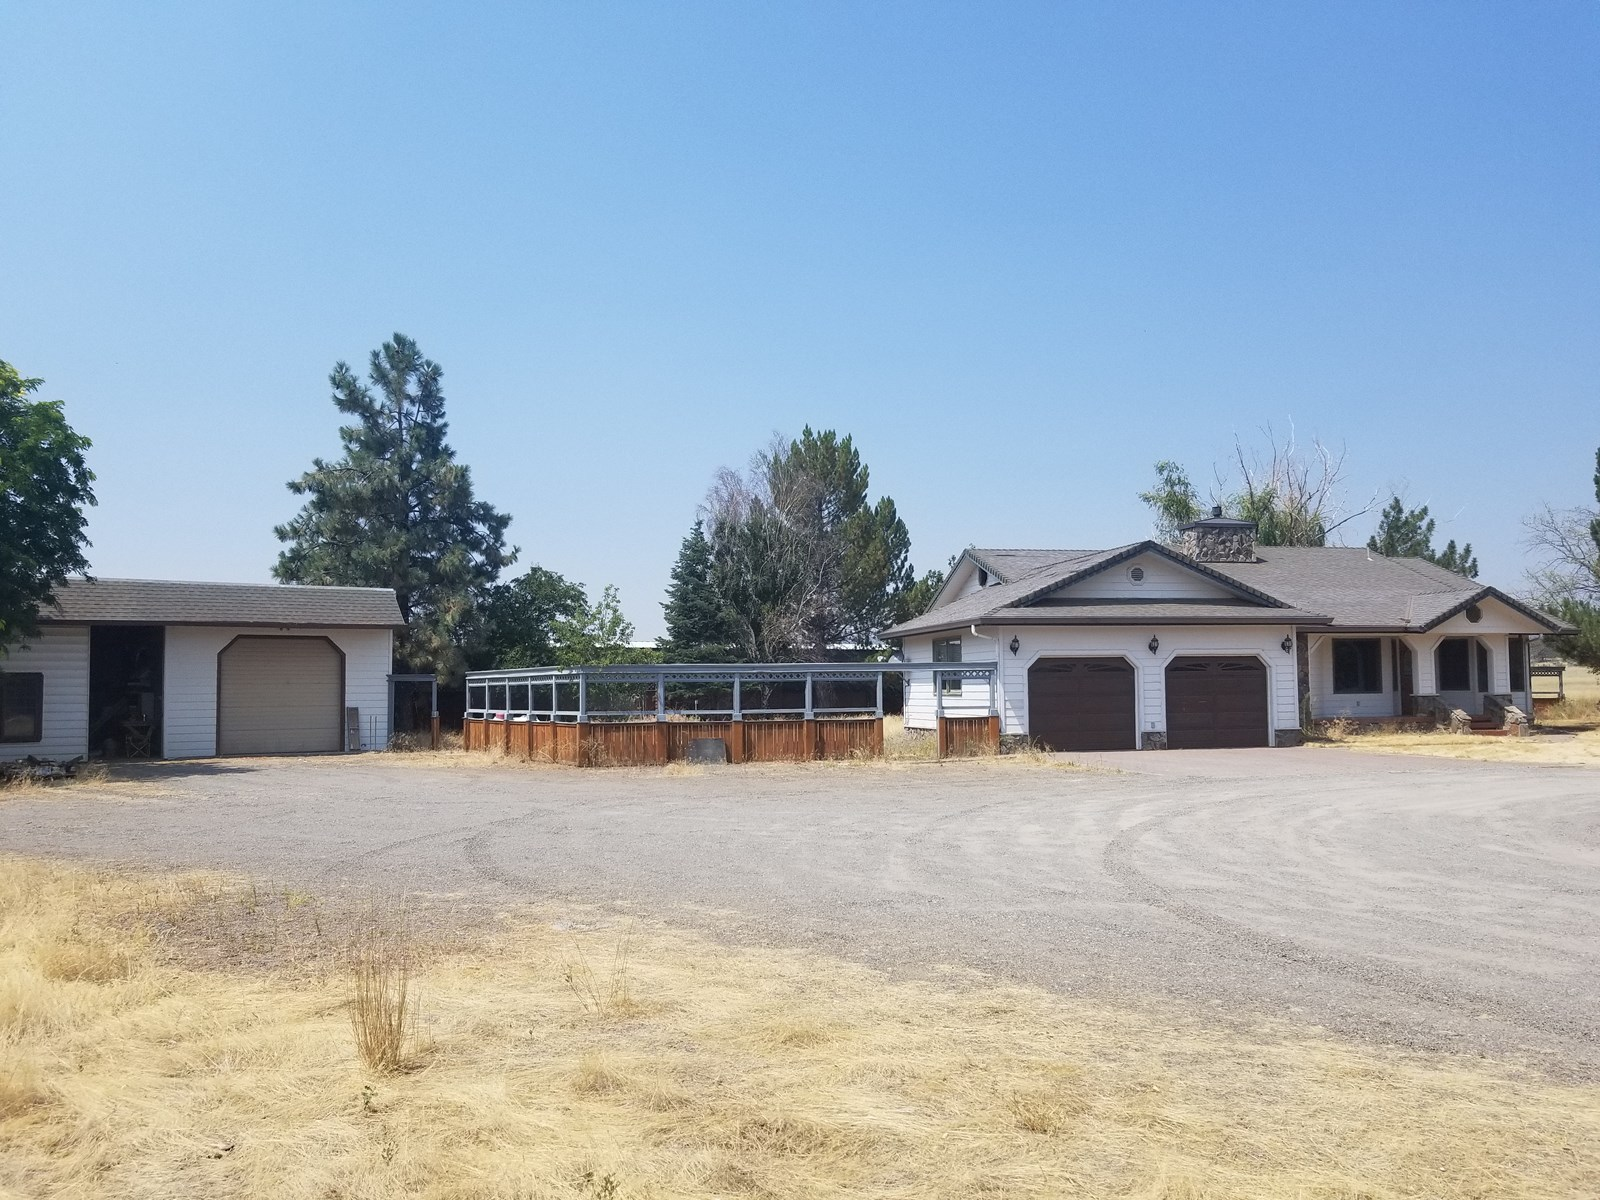 2 Bdr/2 Bth, 1,779 Sq. Ft,  Ranch Style Home